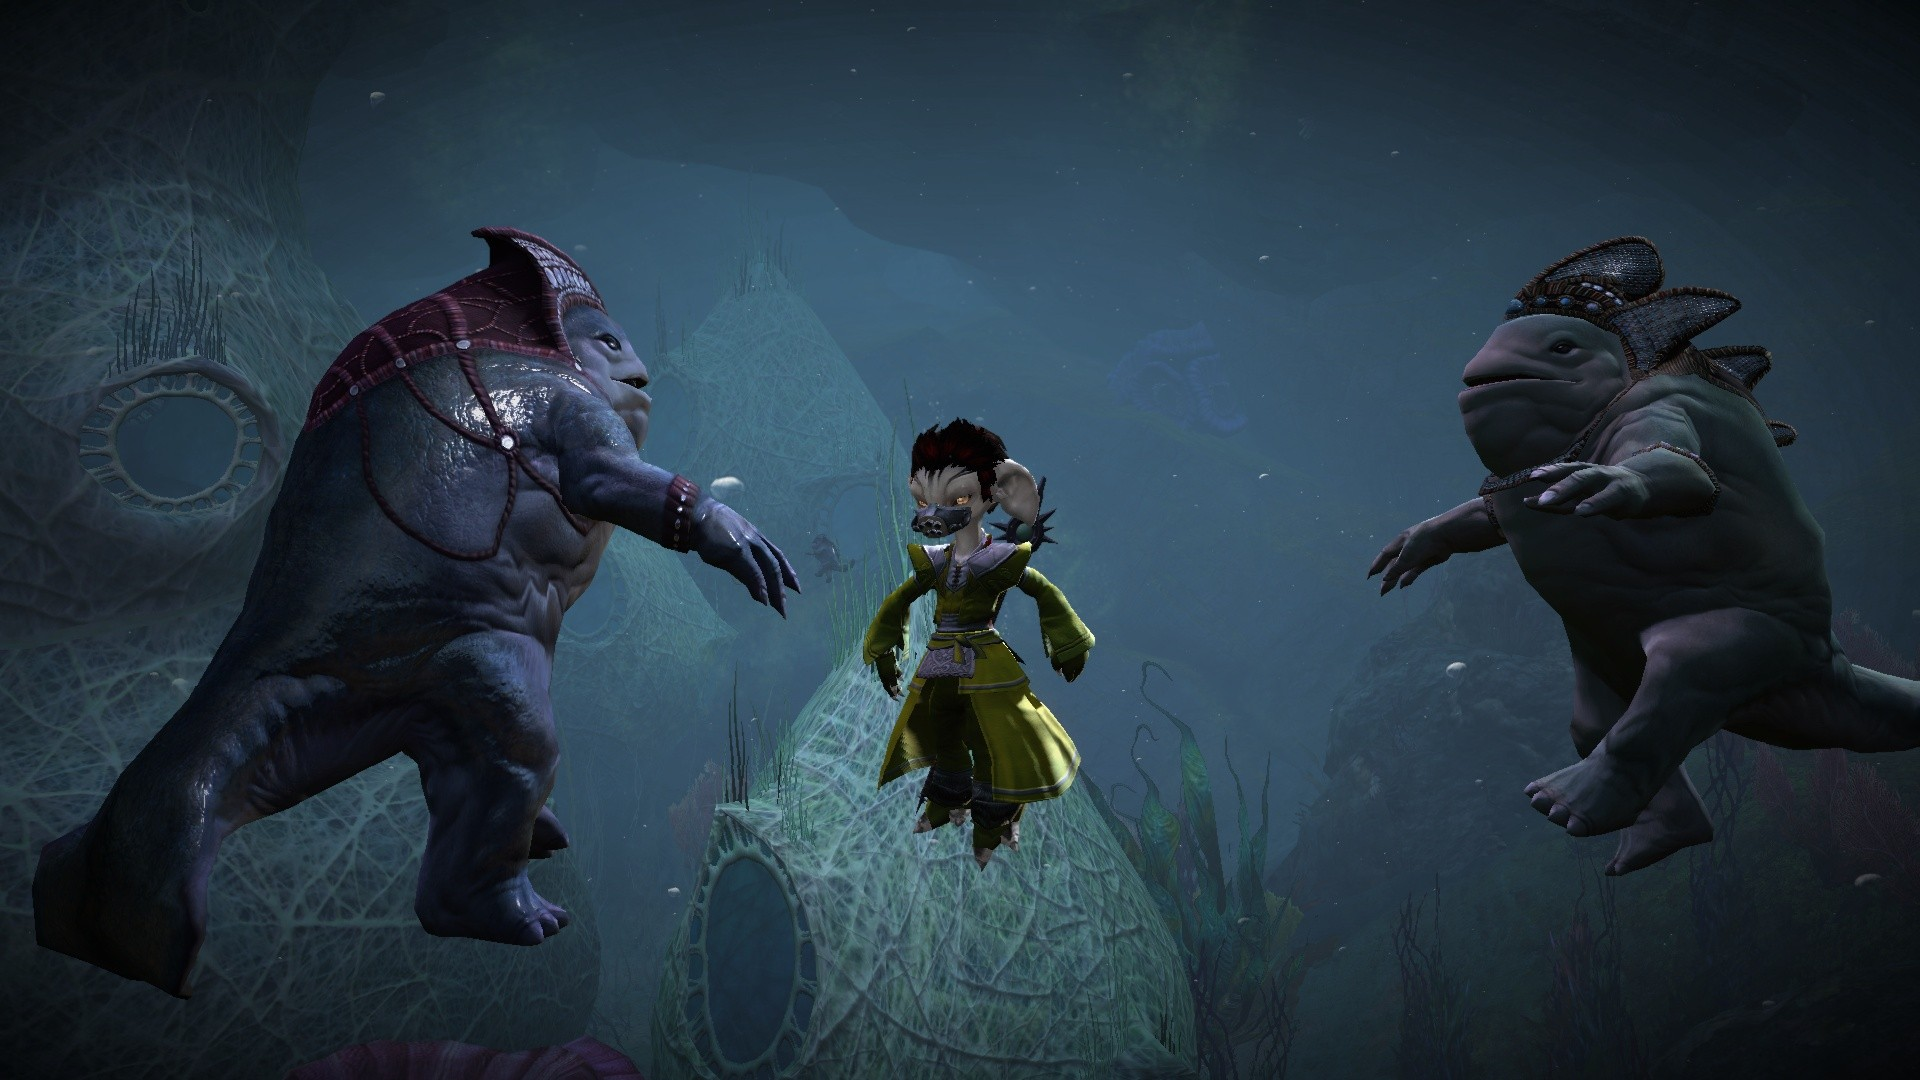 GW2-Making friends underwater!